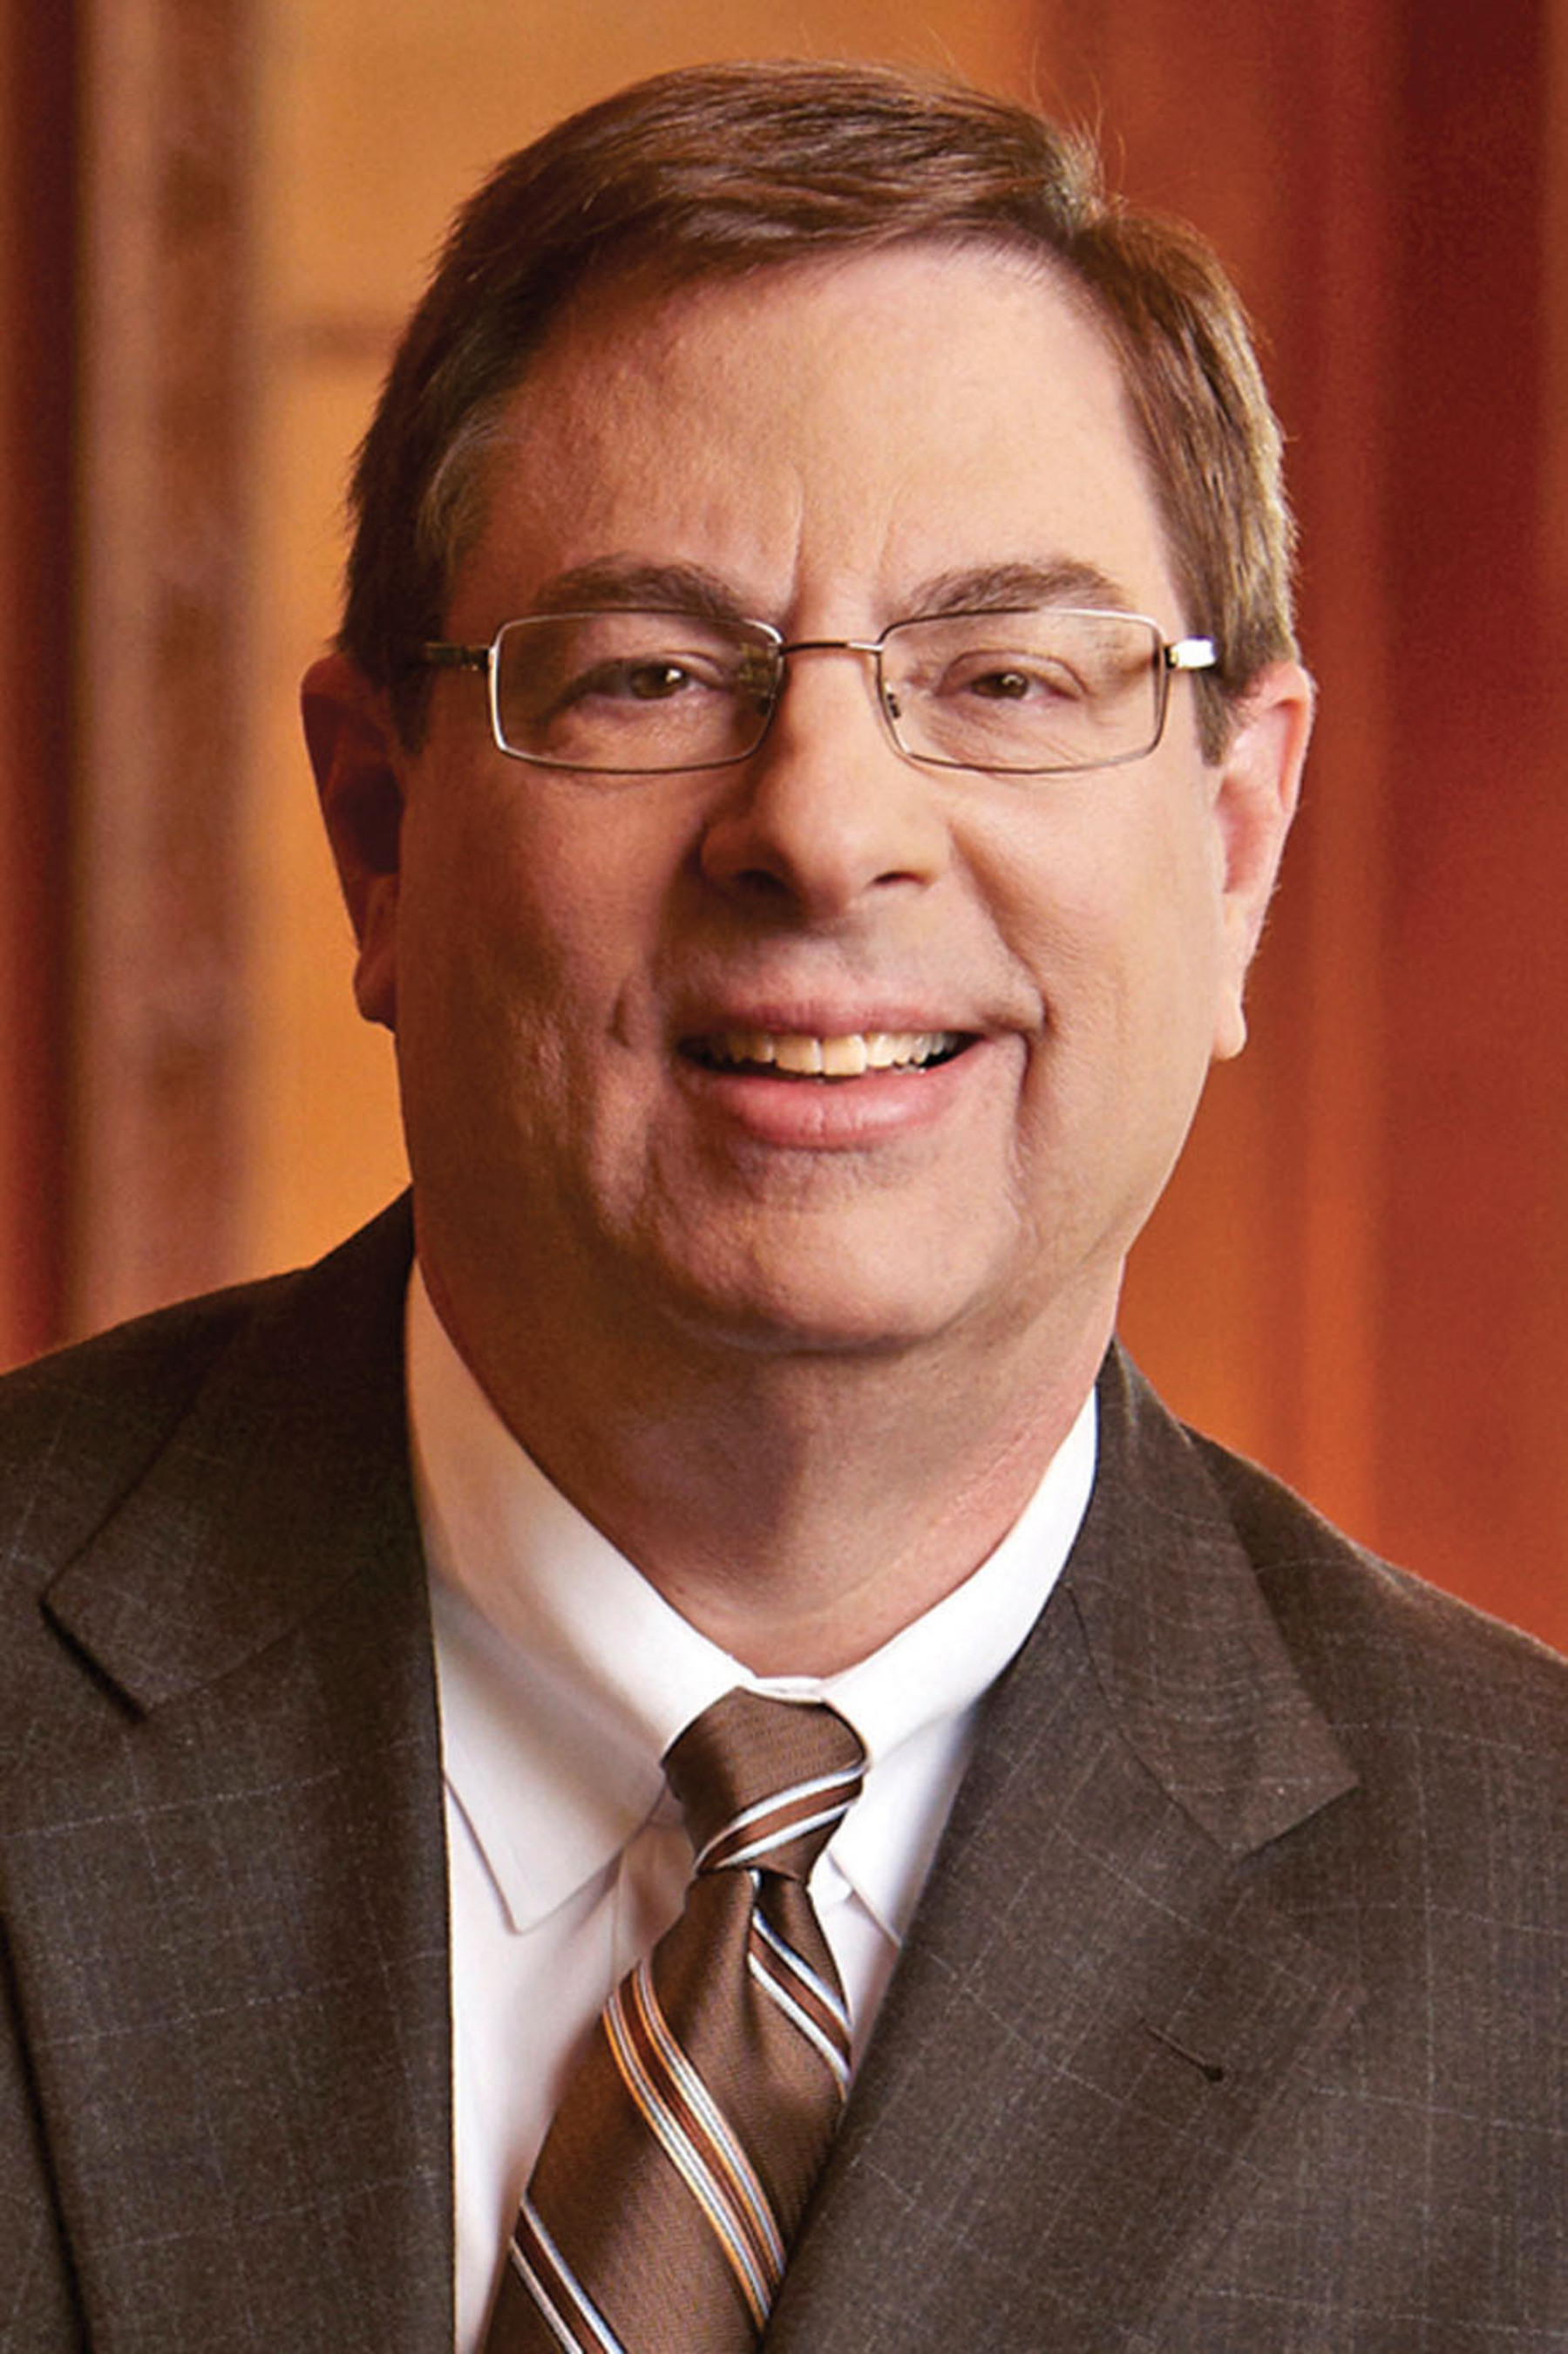 WEC Energy Group announces leadership changes effective May 1